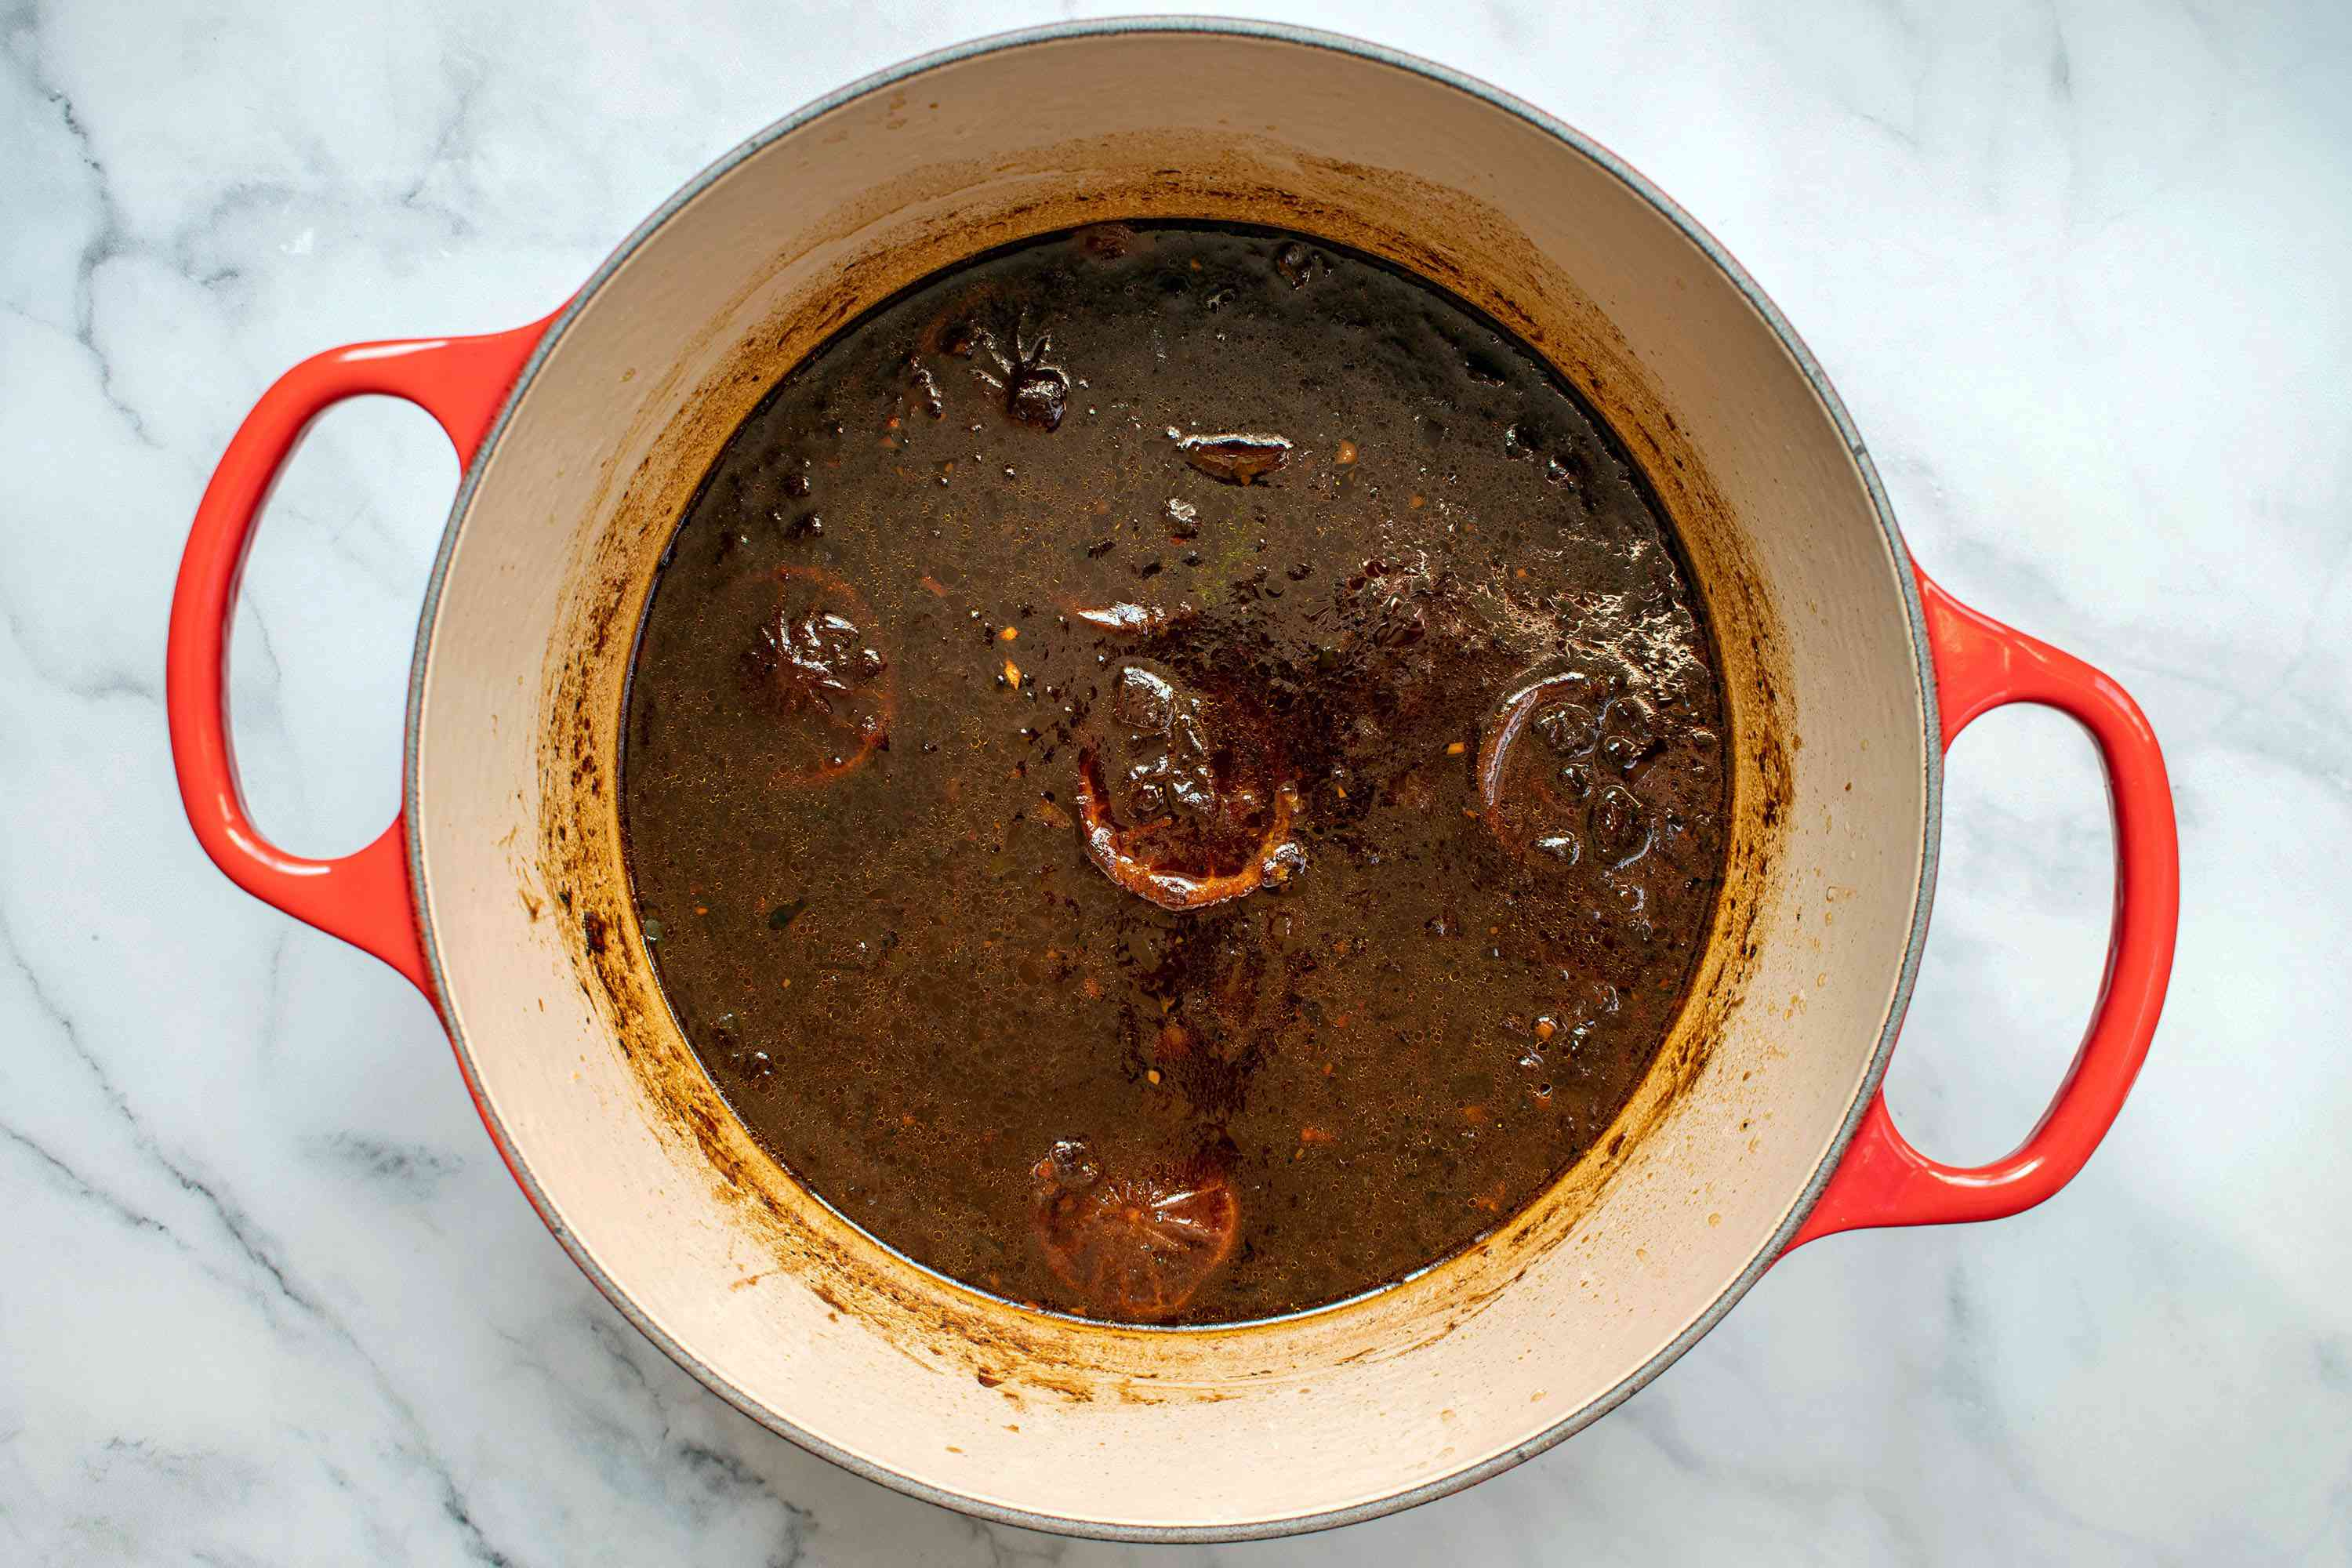 Homemade Worcestershire sauce ingredients cooking together in a large saucepan